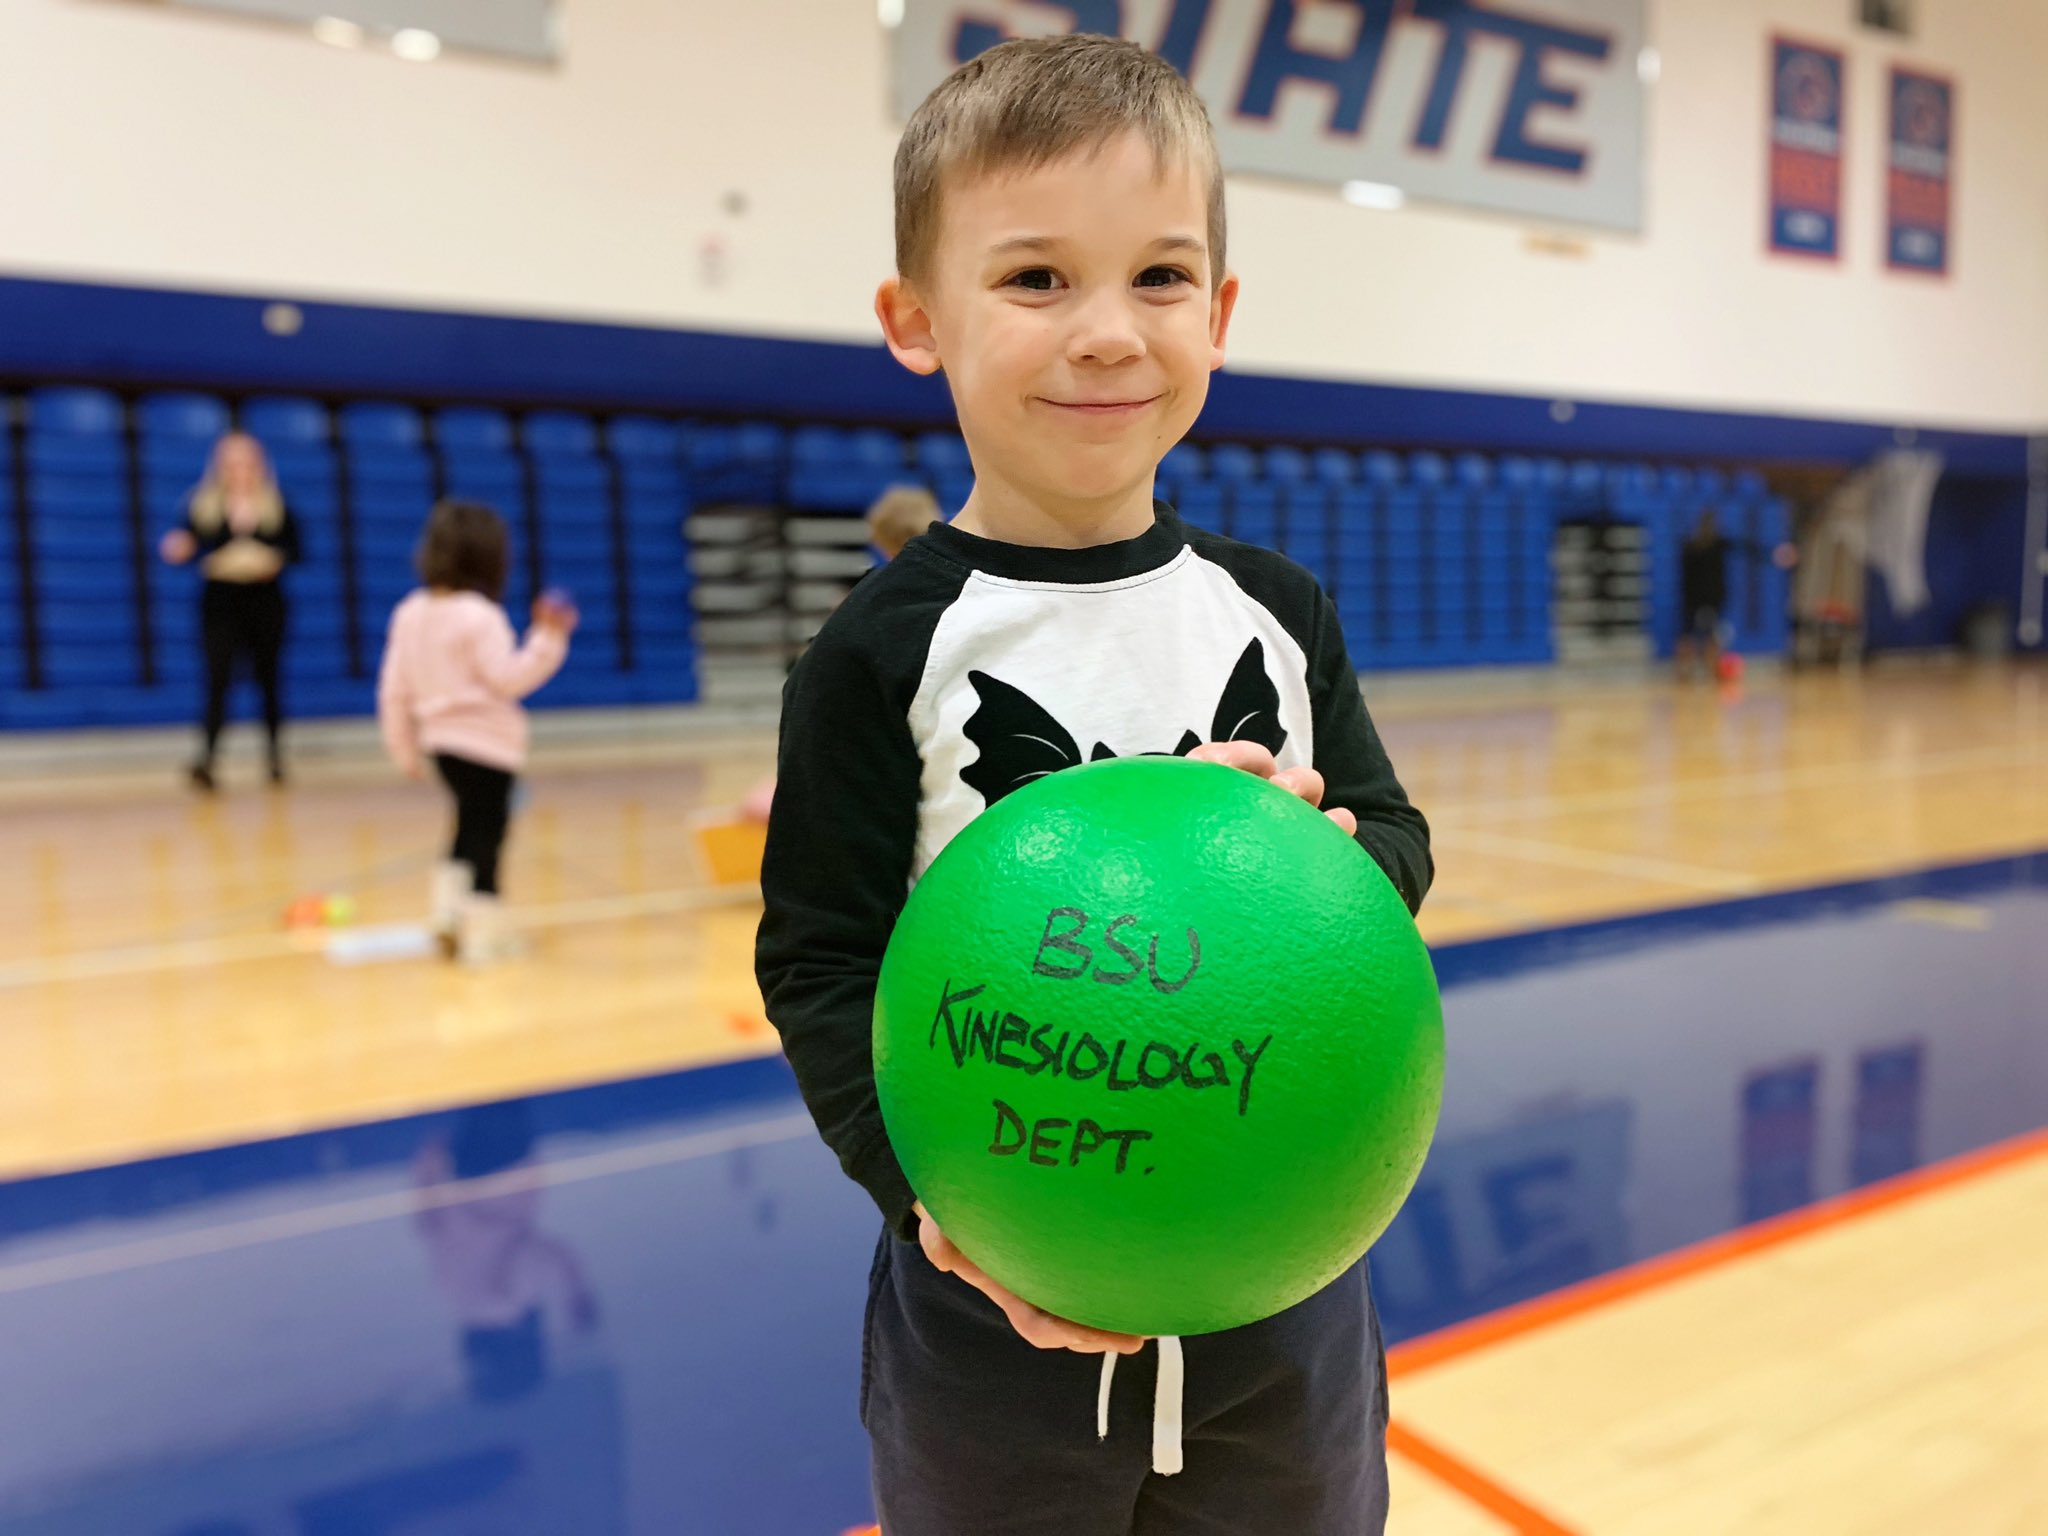 Young child holding a ball in a gym